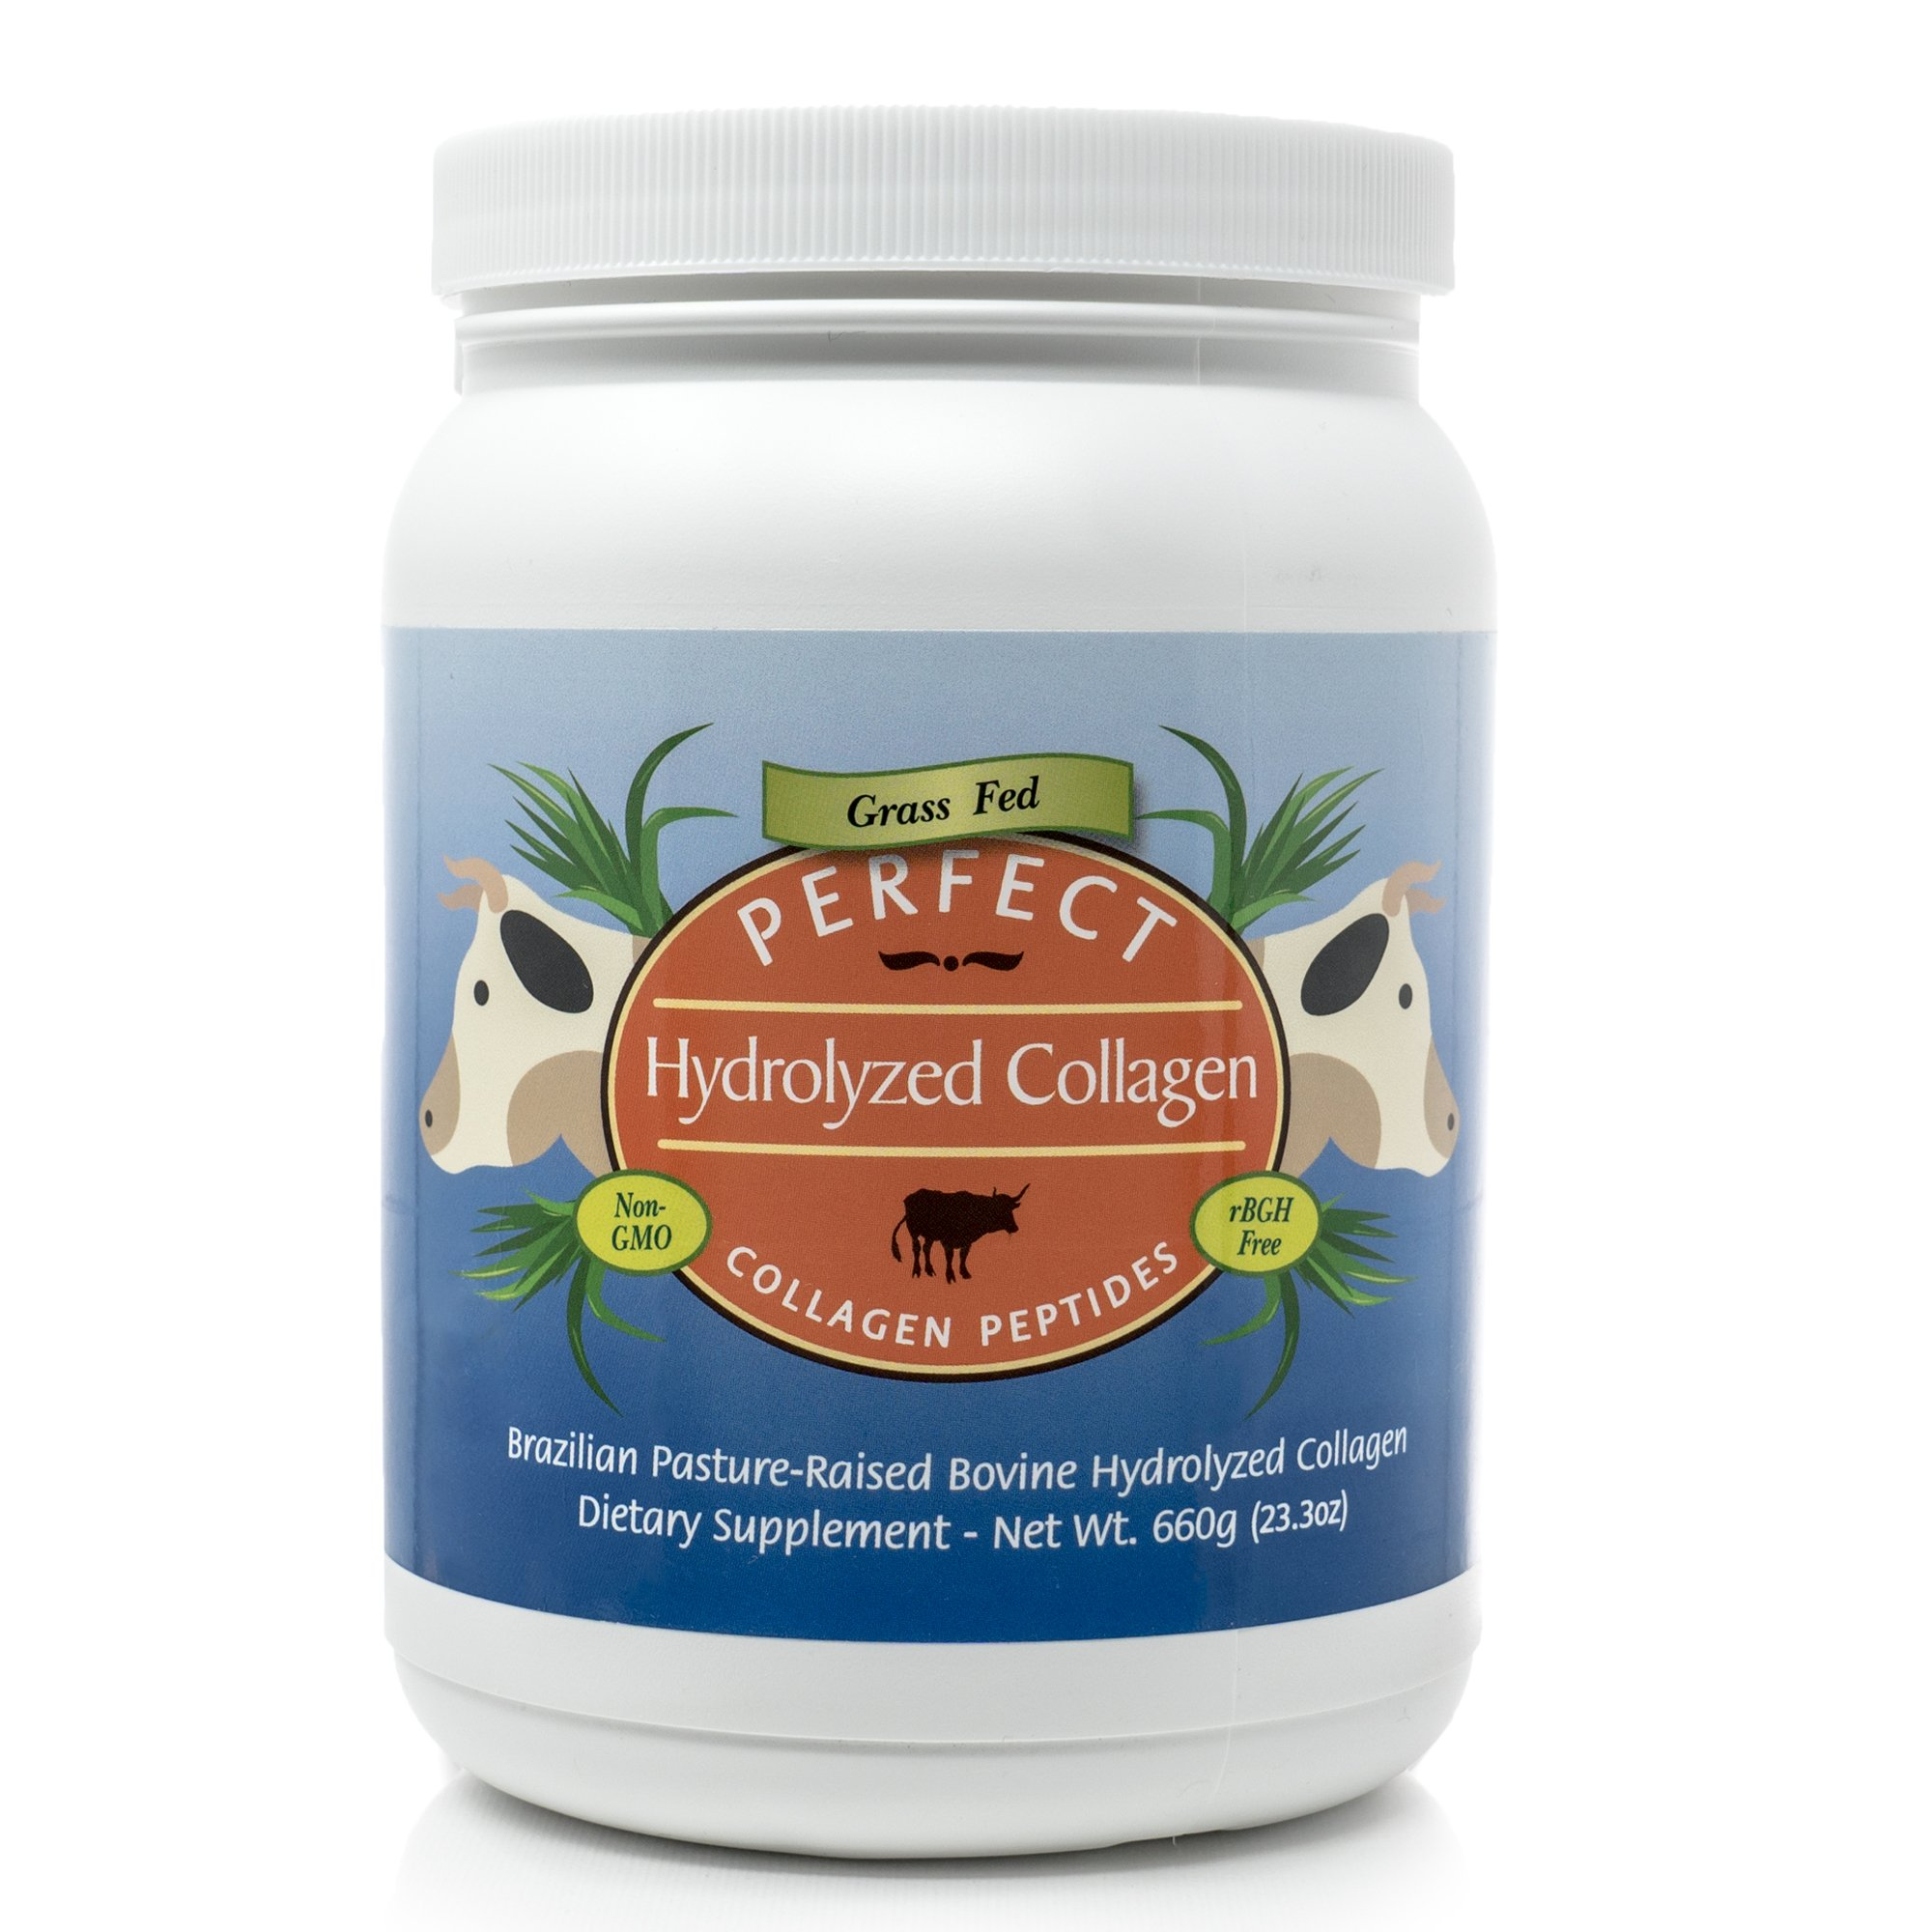 Perfect Hydrolyzed Collagen Peptides, from 100% Grass-Fed Brazilian Pasture Raised Cows, Large 660 Gram Container of Collagen Hydrolysate Powder, Highest Bioavailability